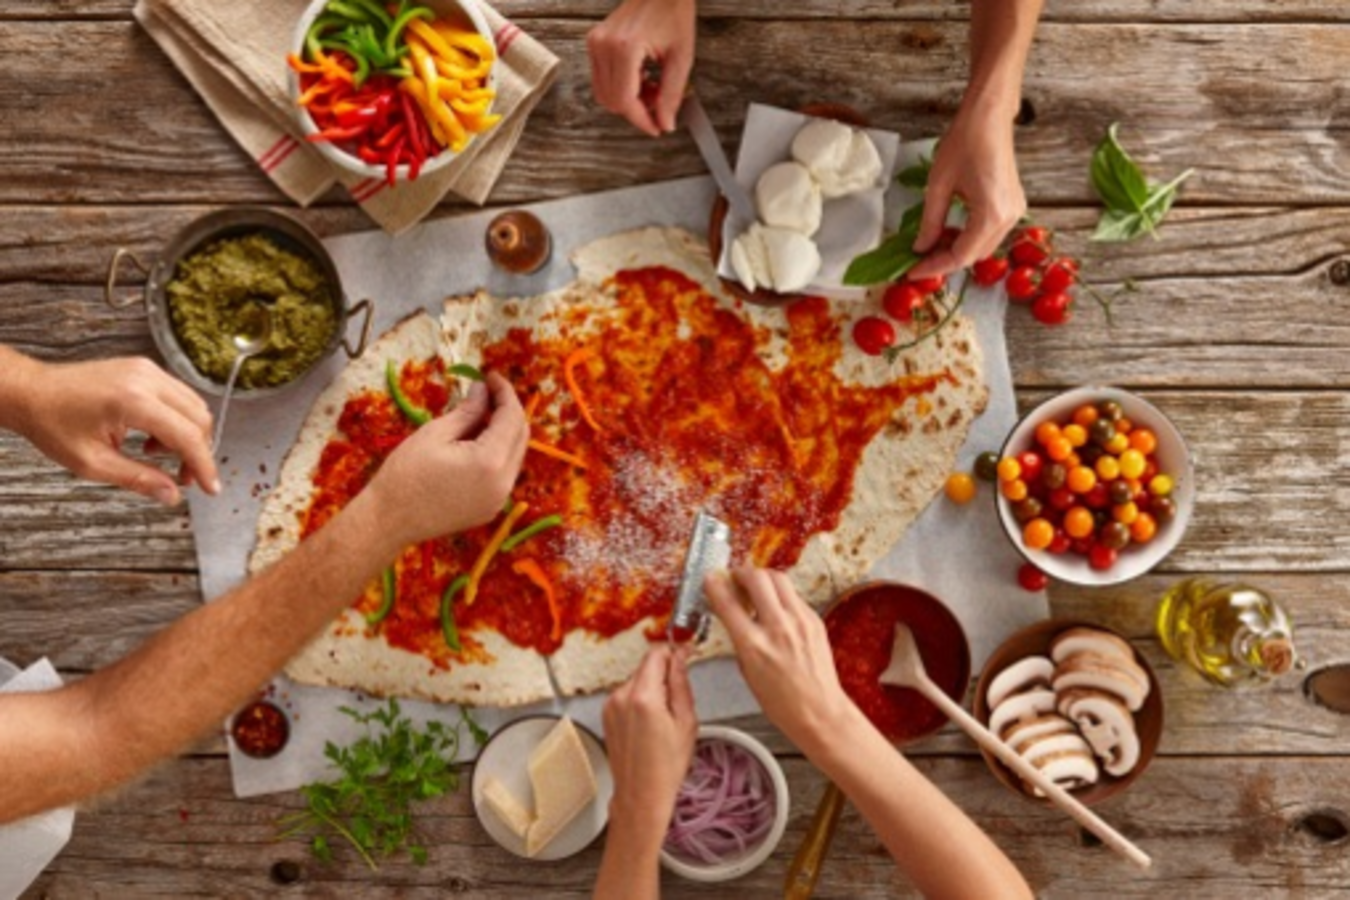 The Unexpected Power of Shared Meals | SXSW 2015 Event Schedule